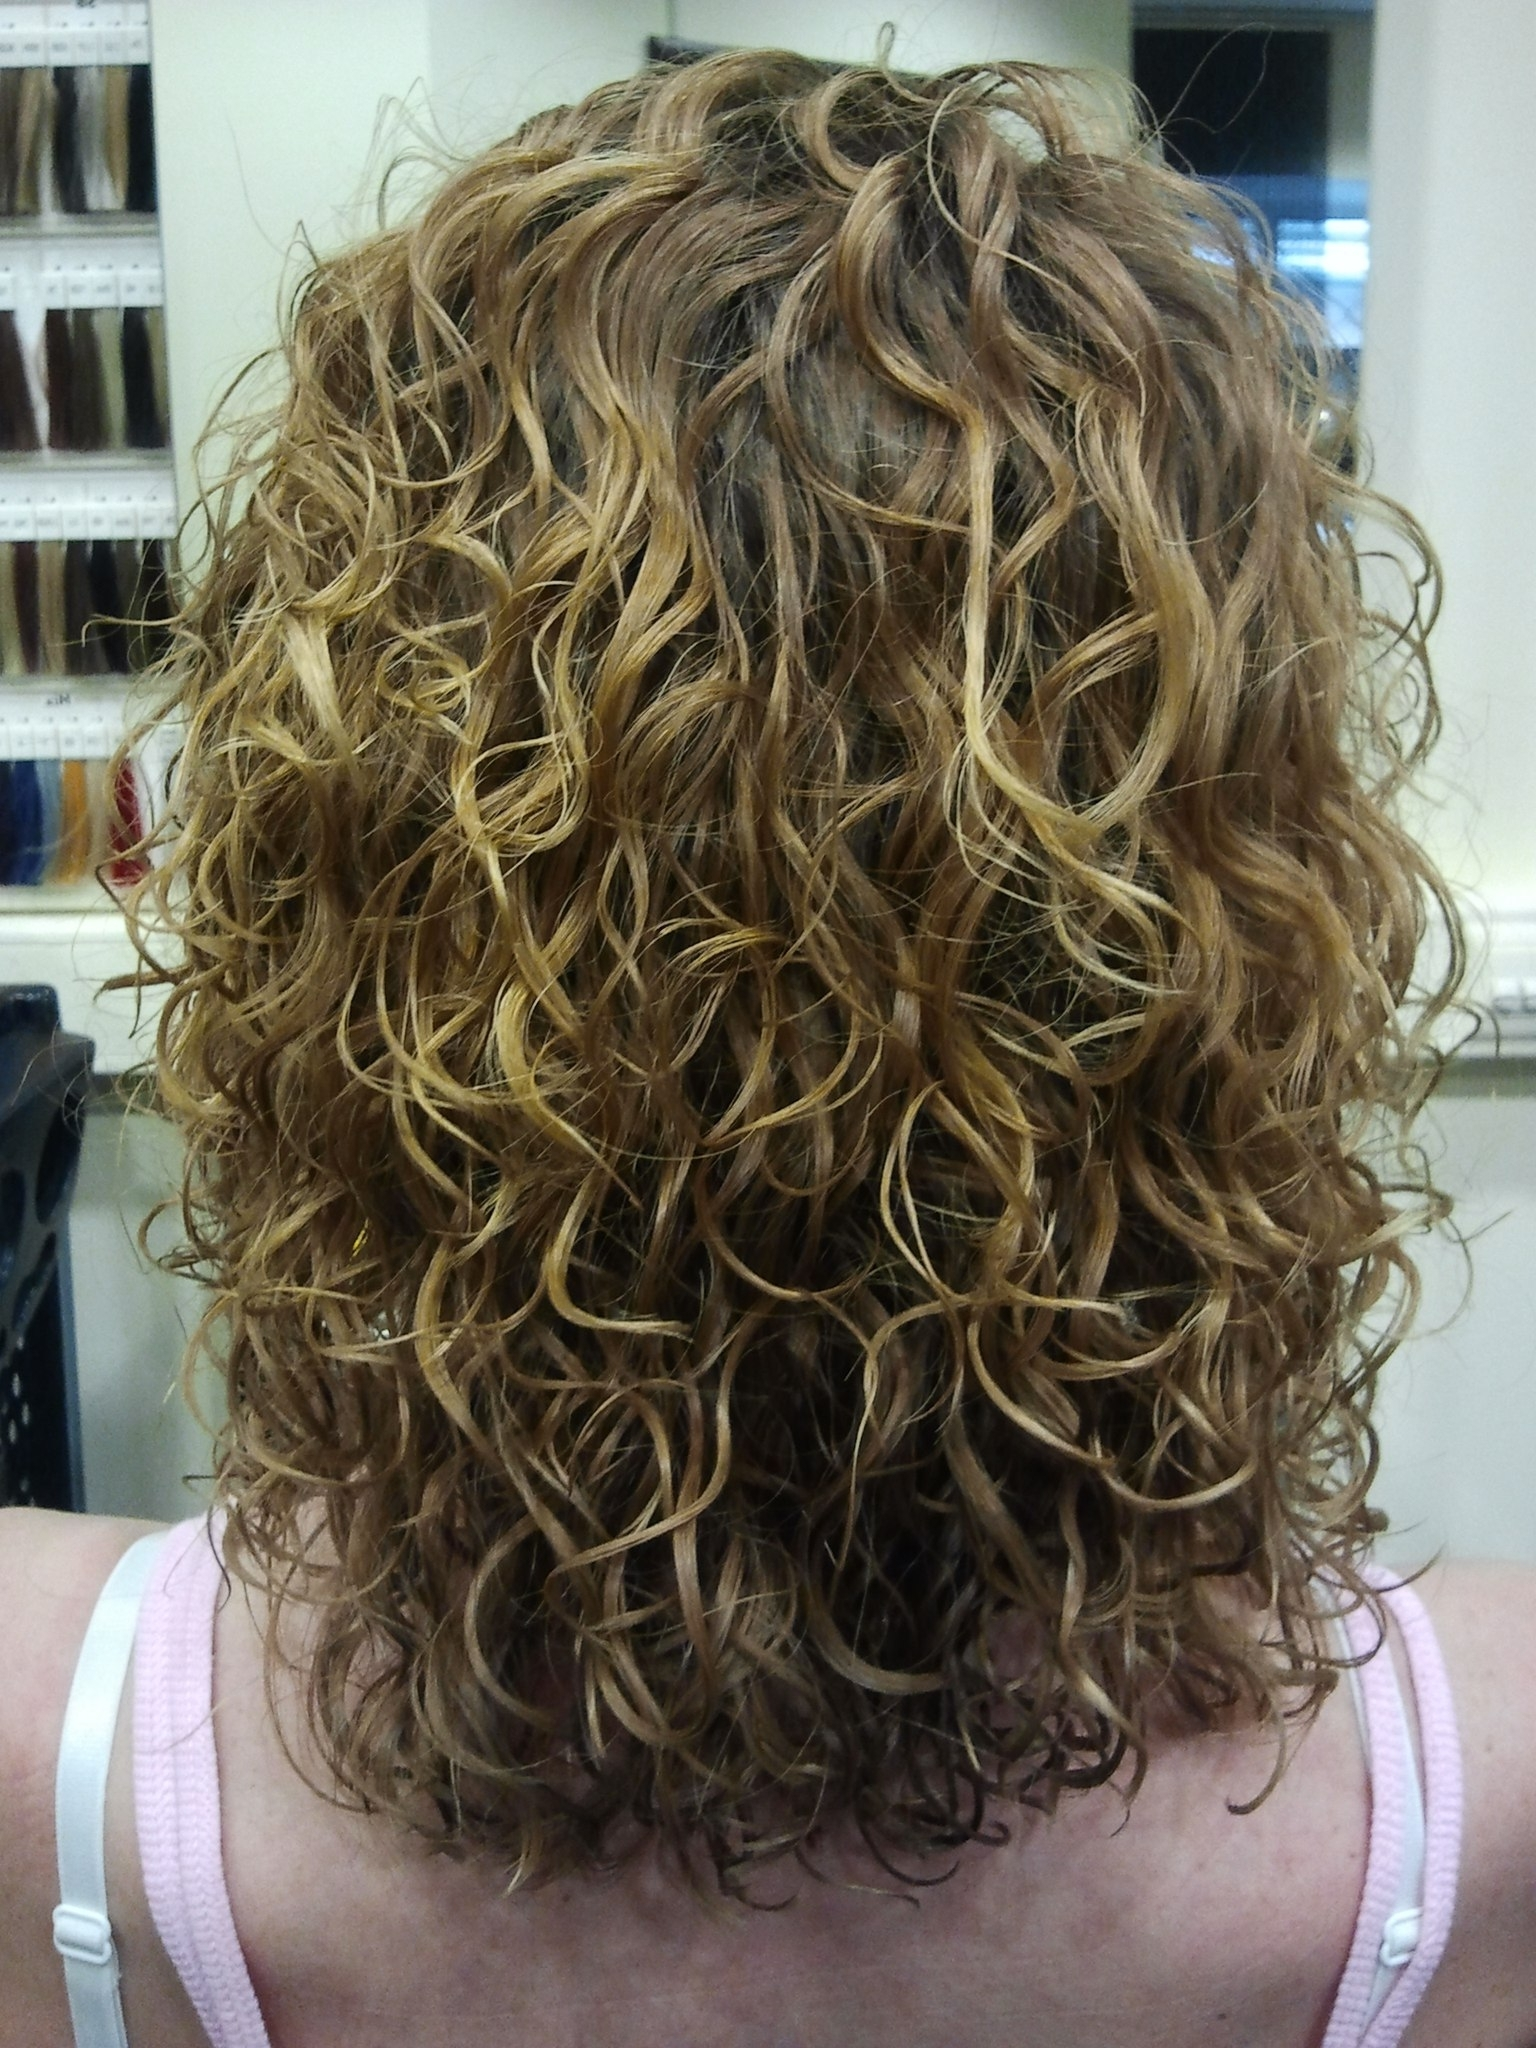 Big Curls, Highlights, Medium Length (View 4 of 15)